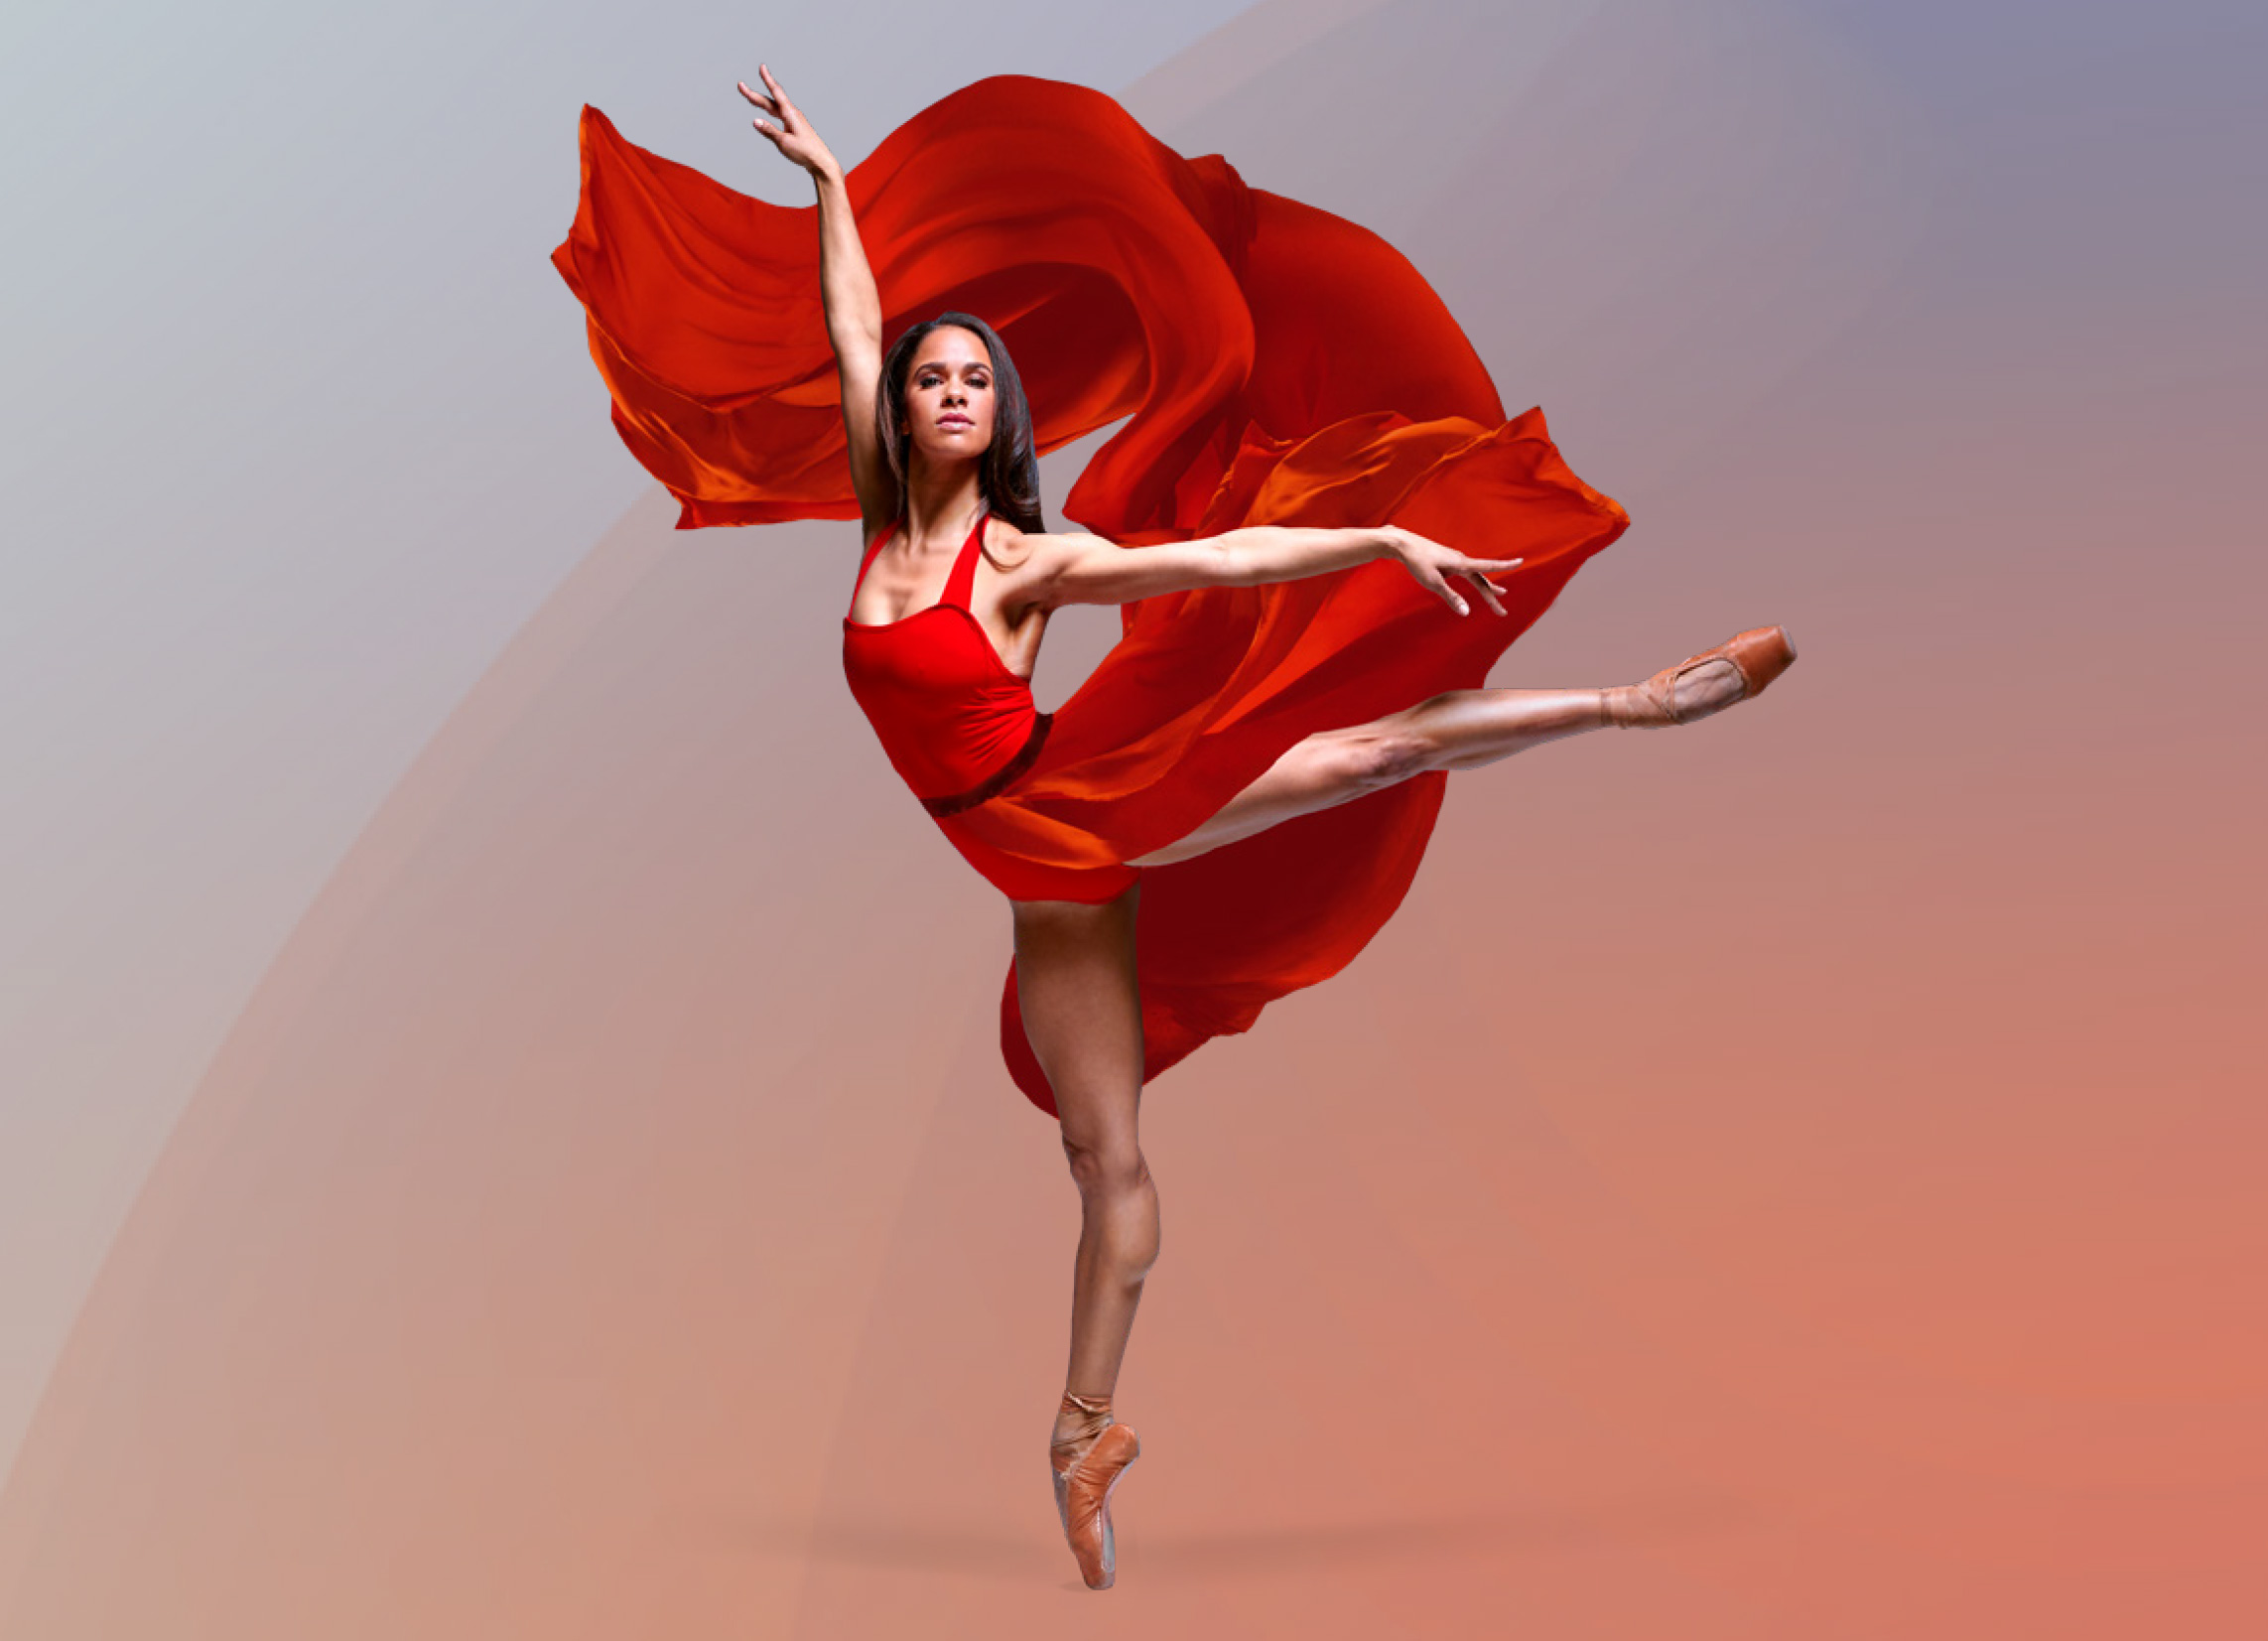 Misty Copeland in a red dress standing on pointe